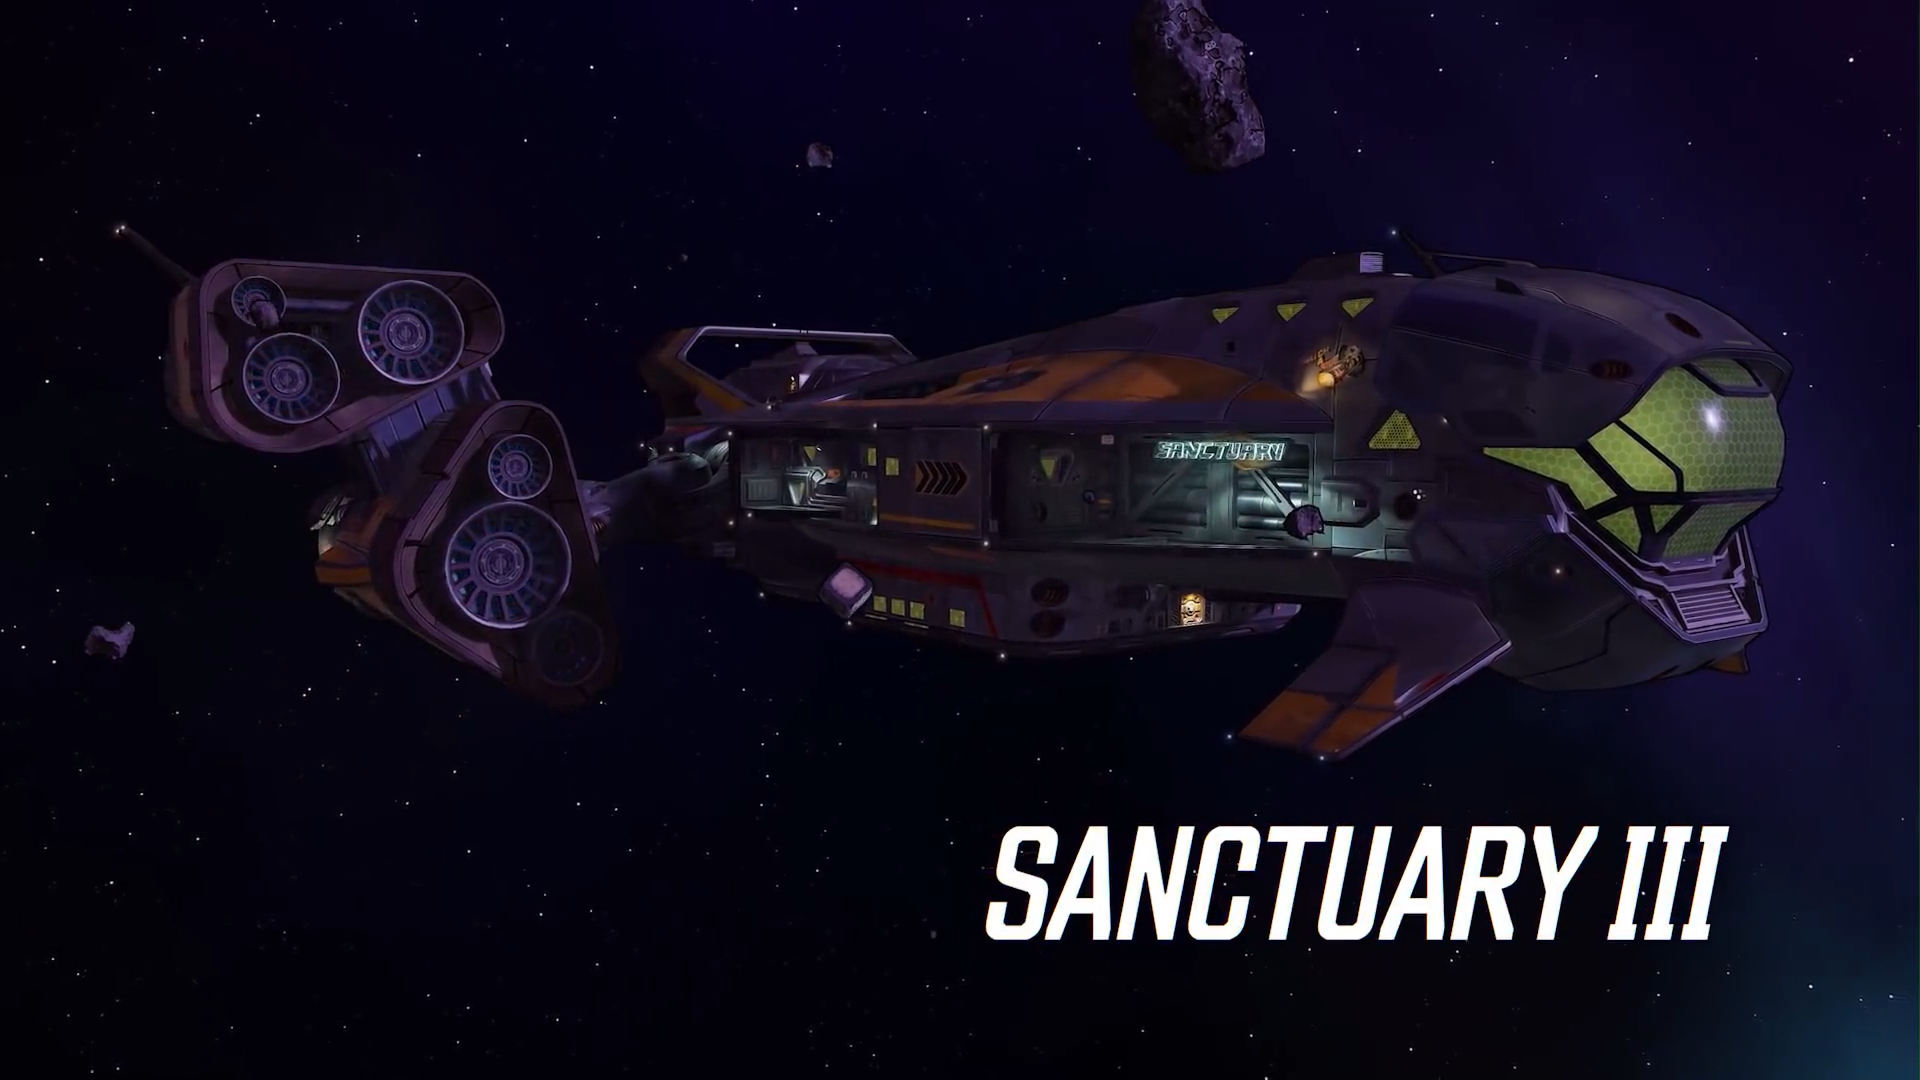 Screenshot of Sancturary 3 the new hub location and spaceship for the vault hunters